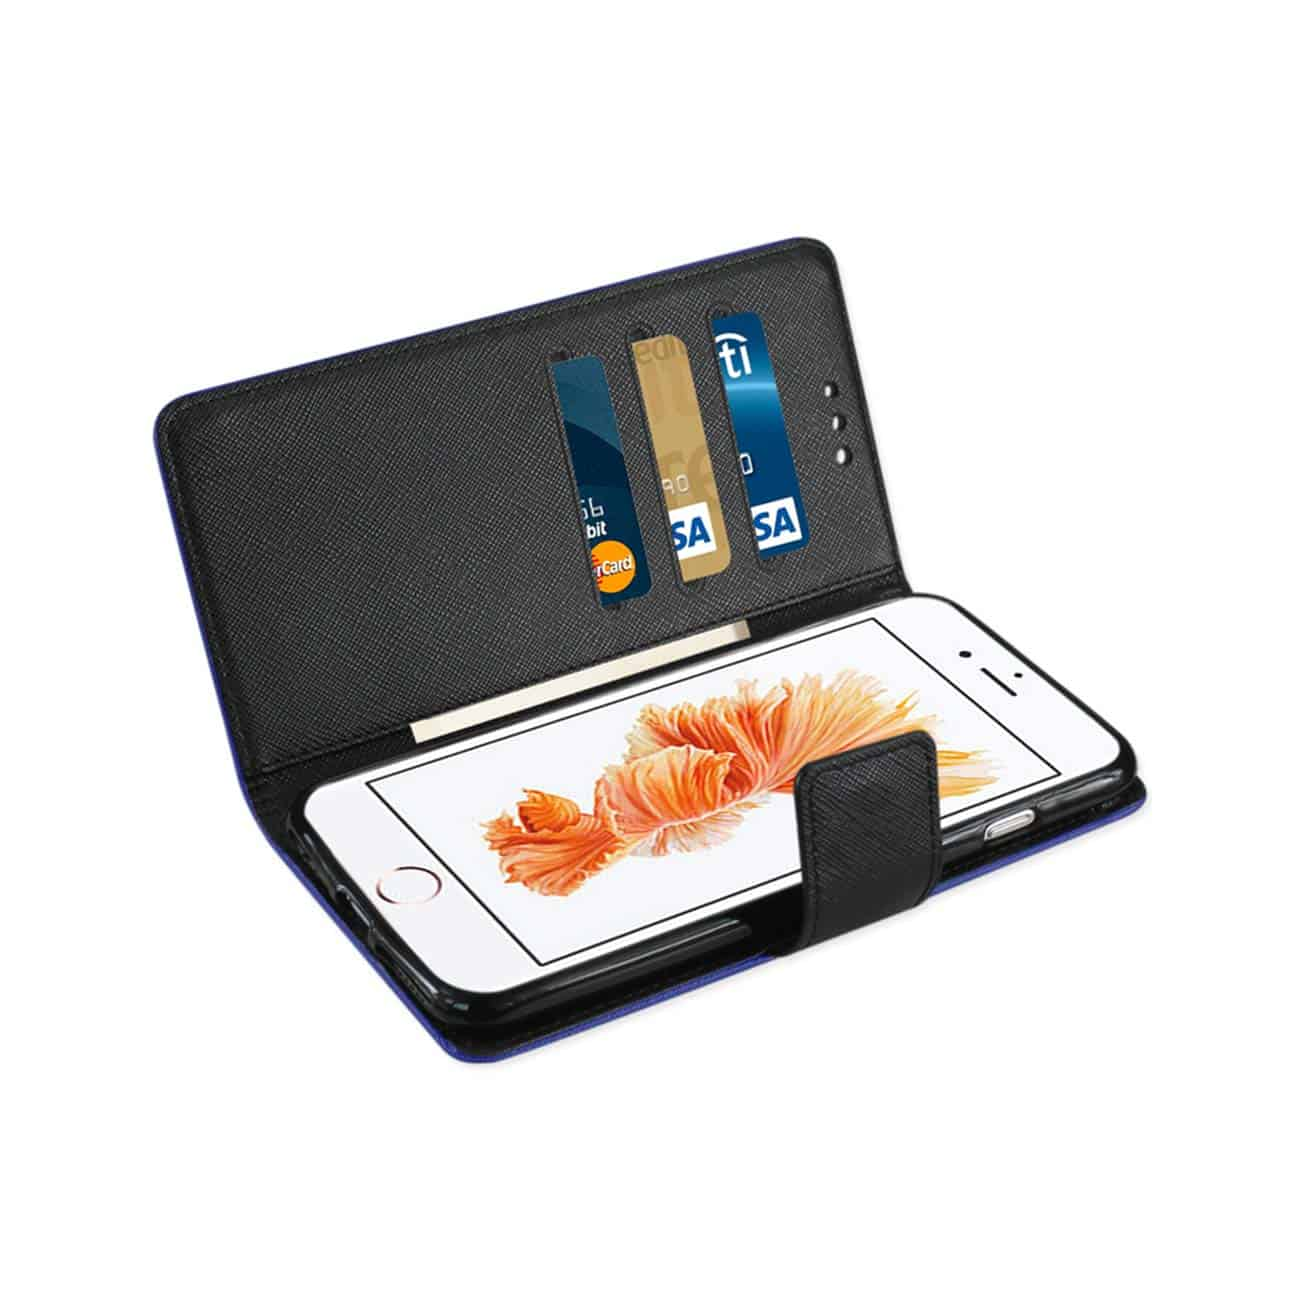 iPhone 8 Plus/ 7 Plus 3-In-1 Wallet Case In Navy